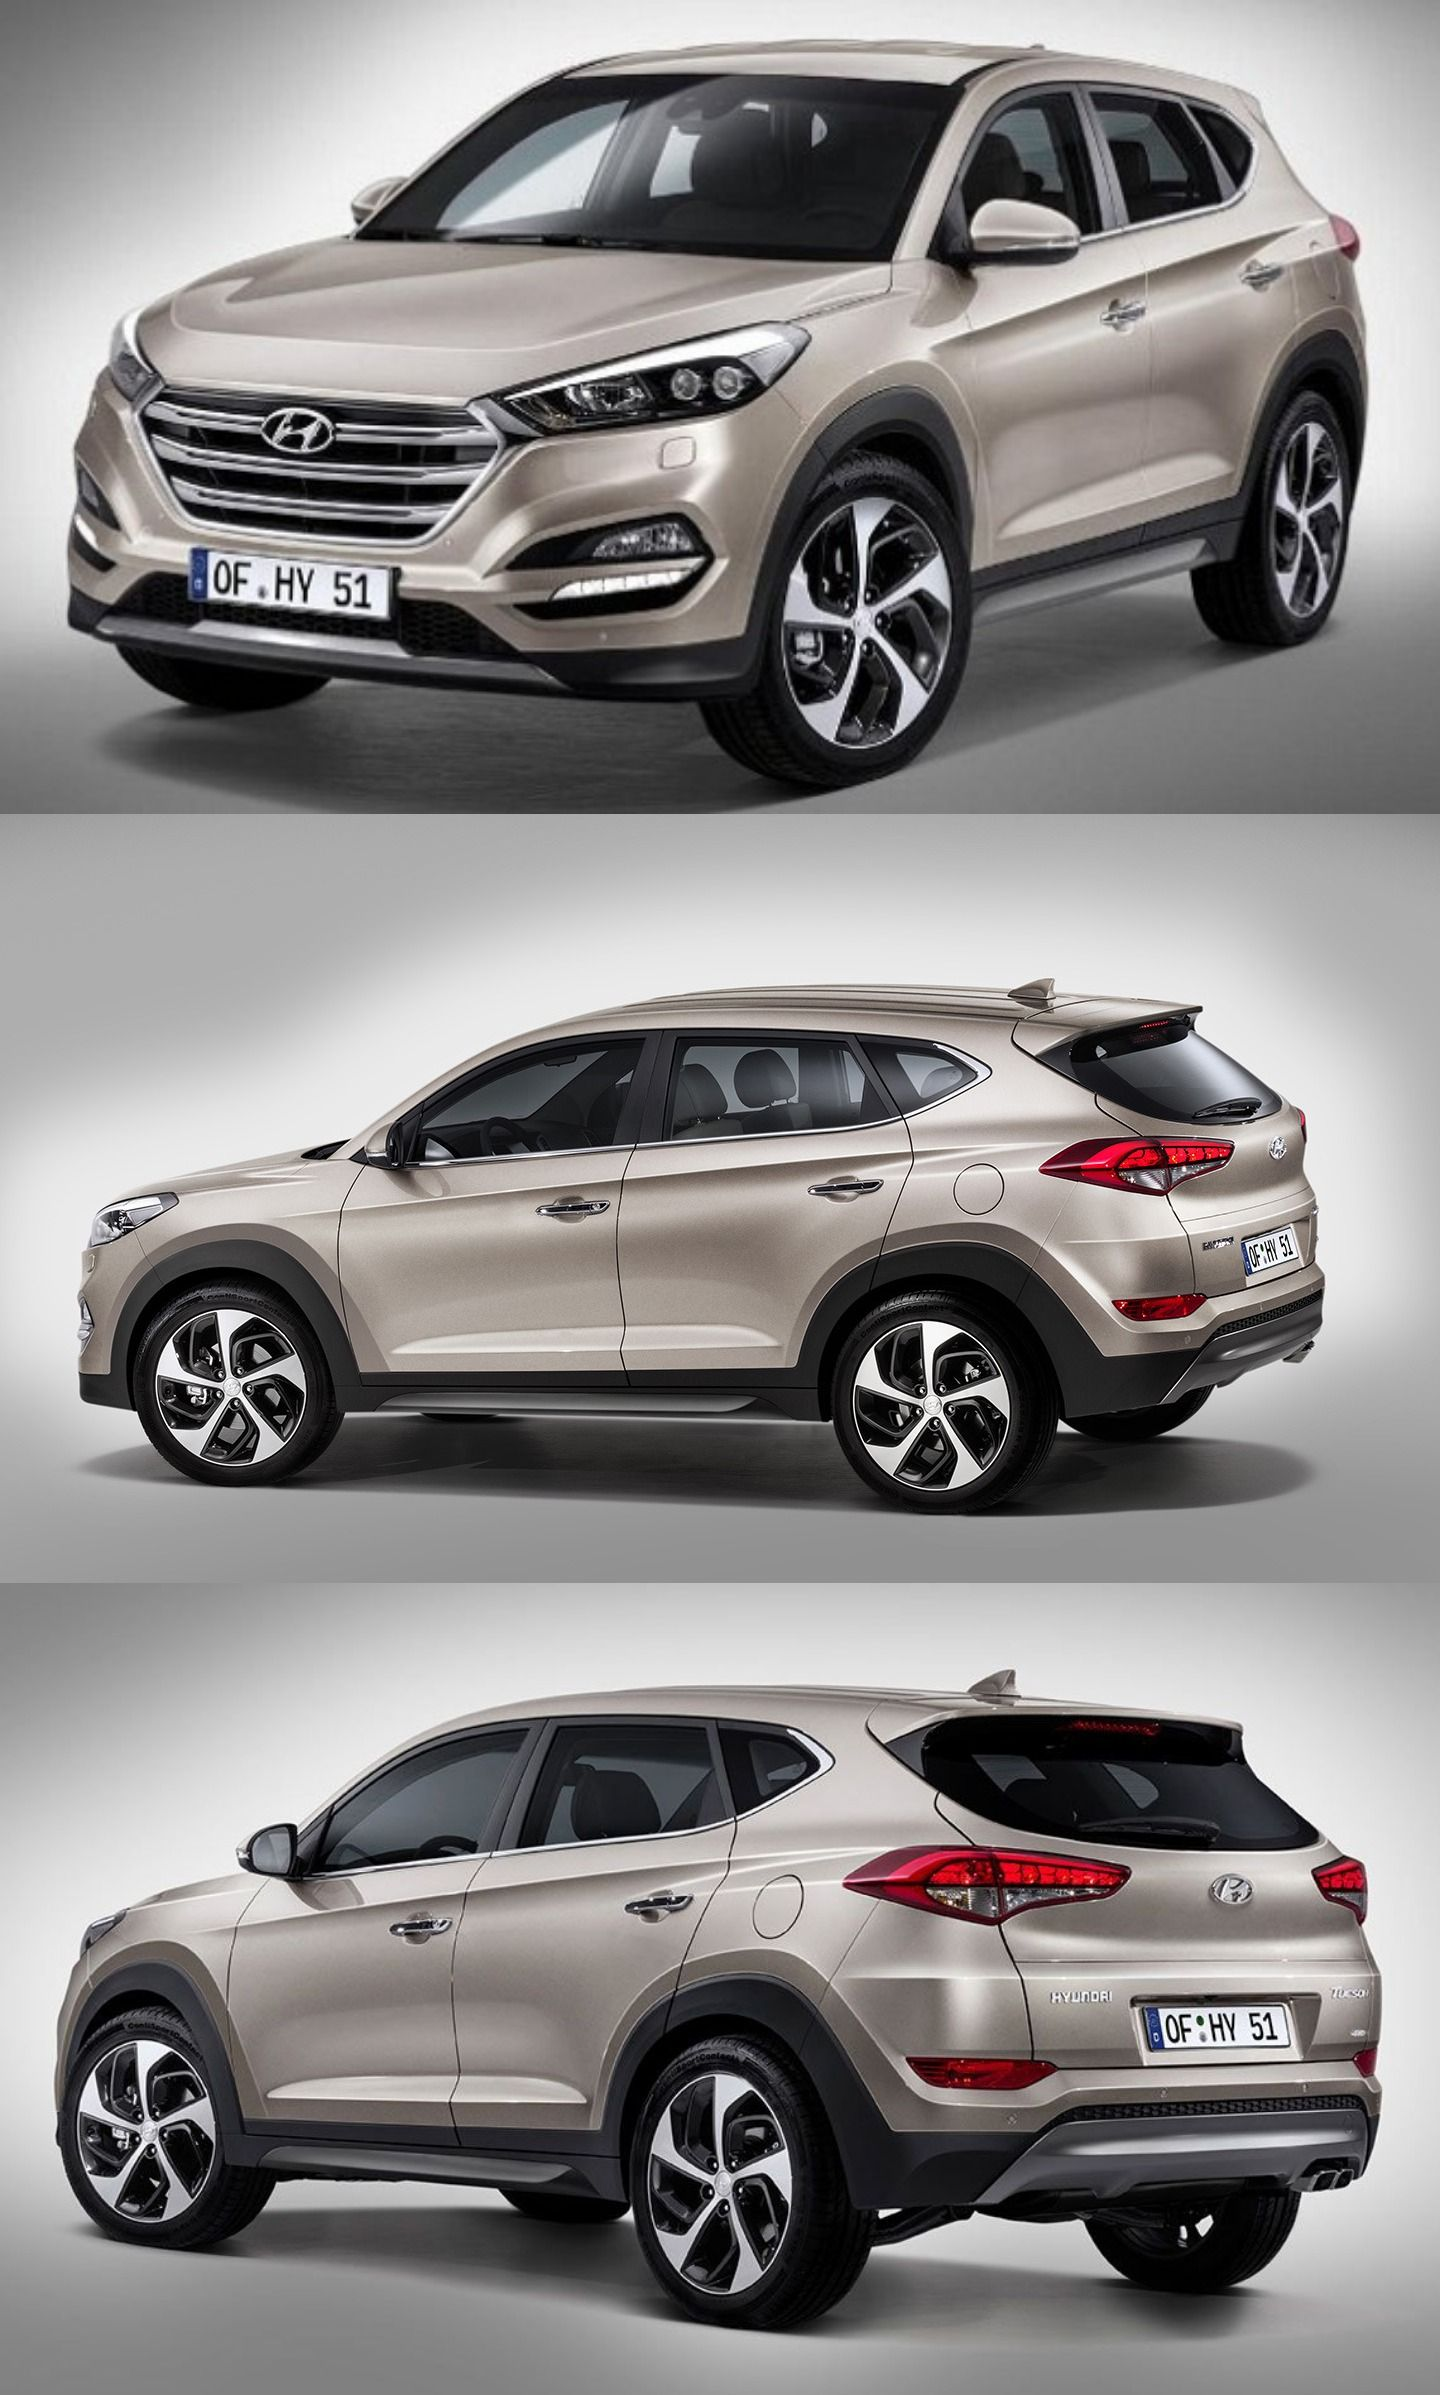 new hyundai tucson unveiled in the uk nouvelle voiture voitures et bonheur. Black Bedroom Furniture Sets. Home Design Ideas